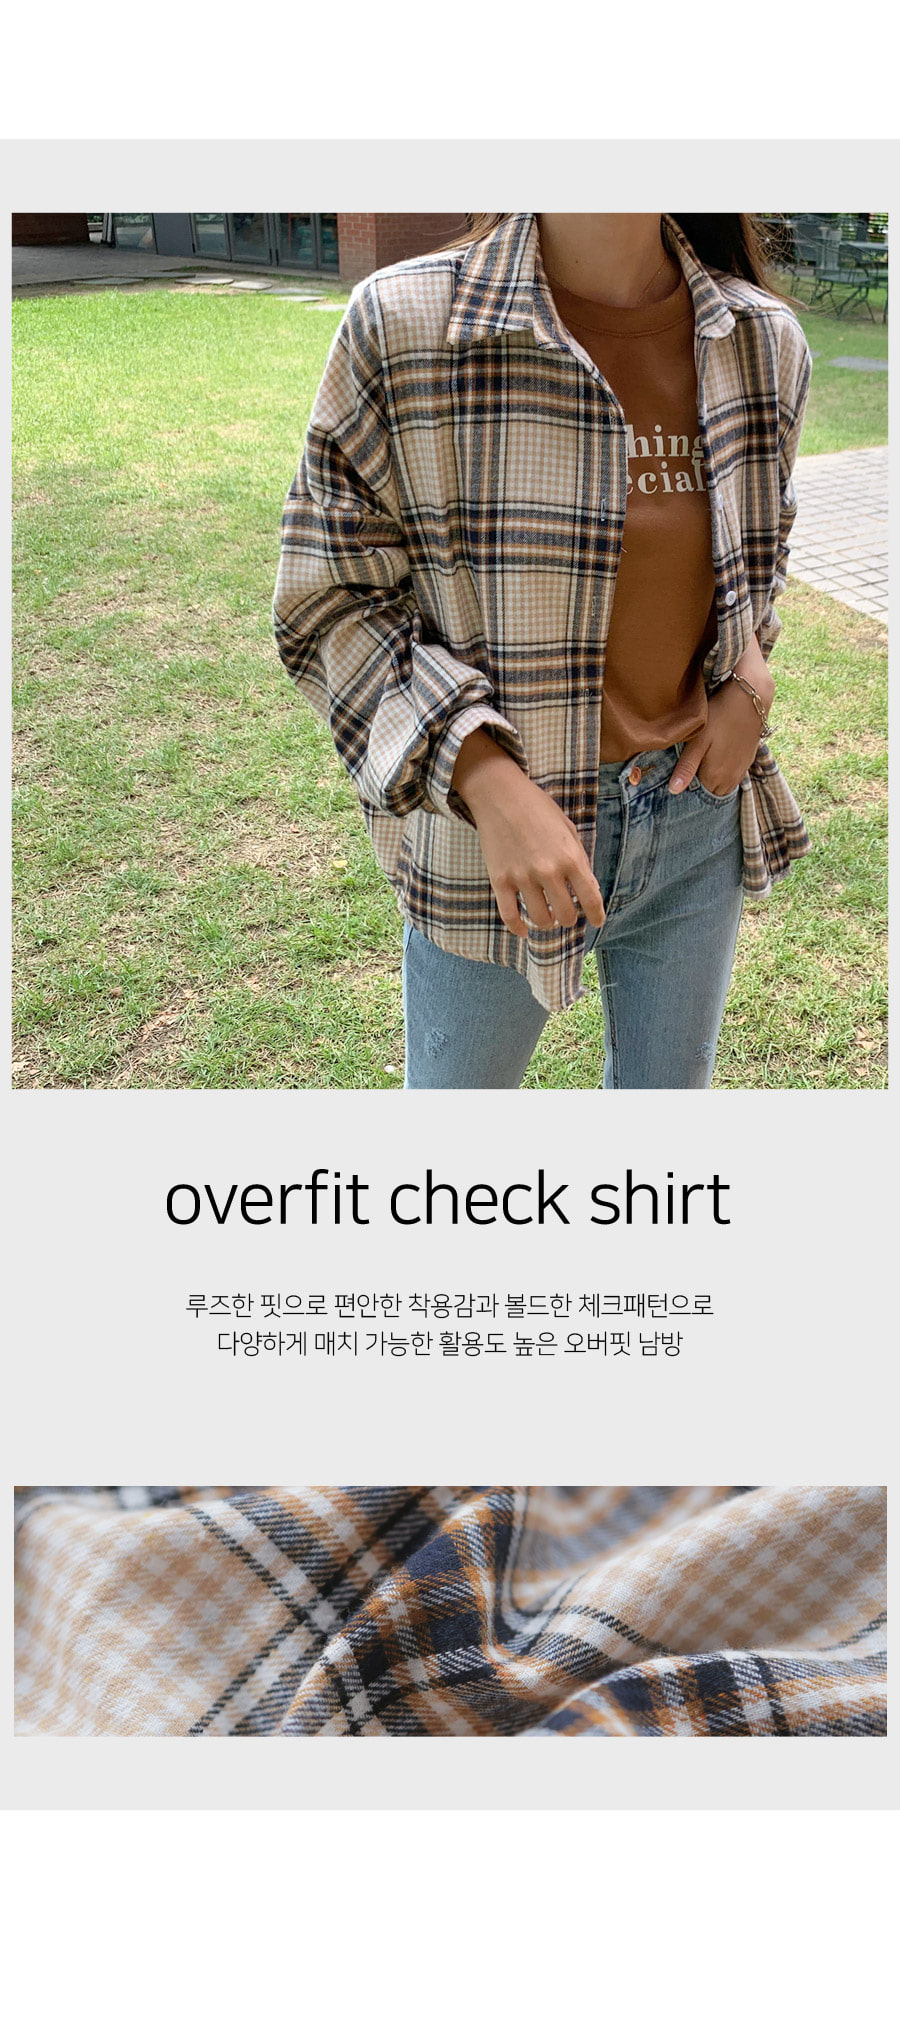 Fix Check Overfit Southern